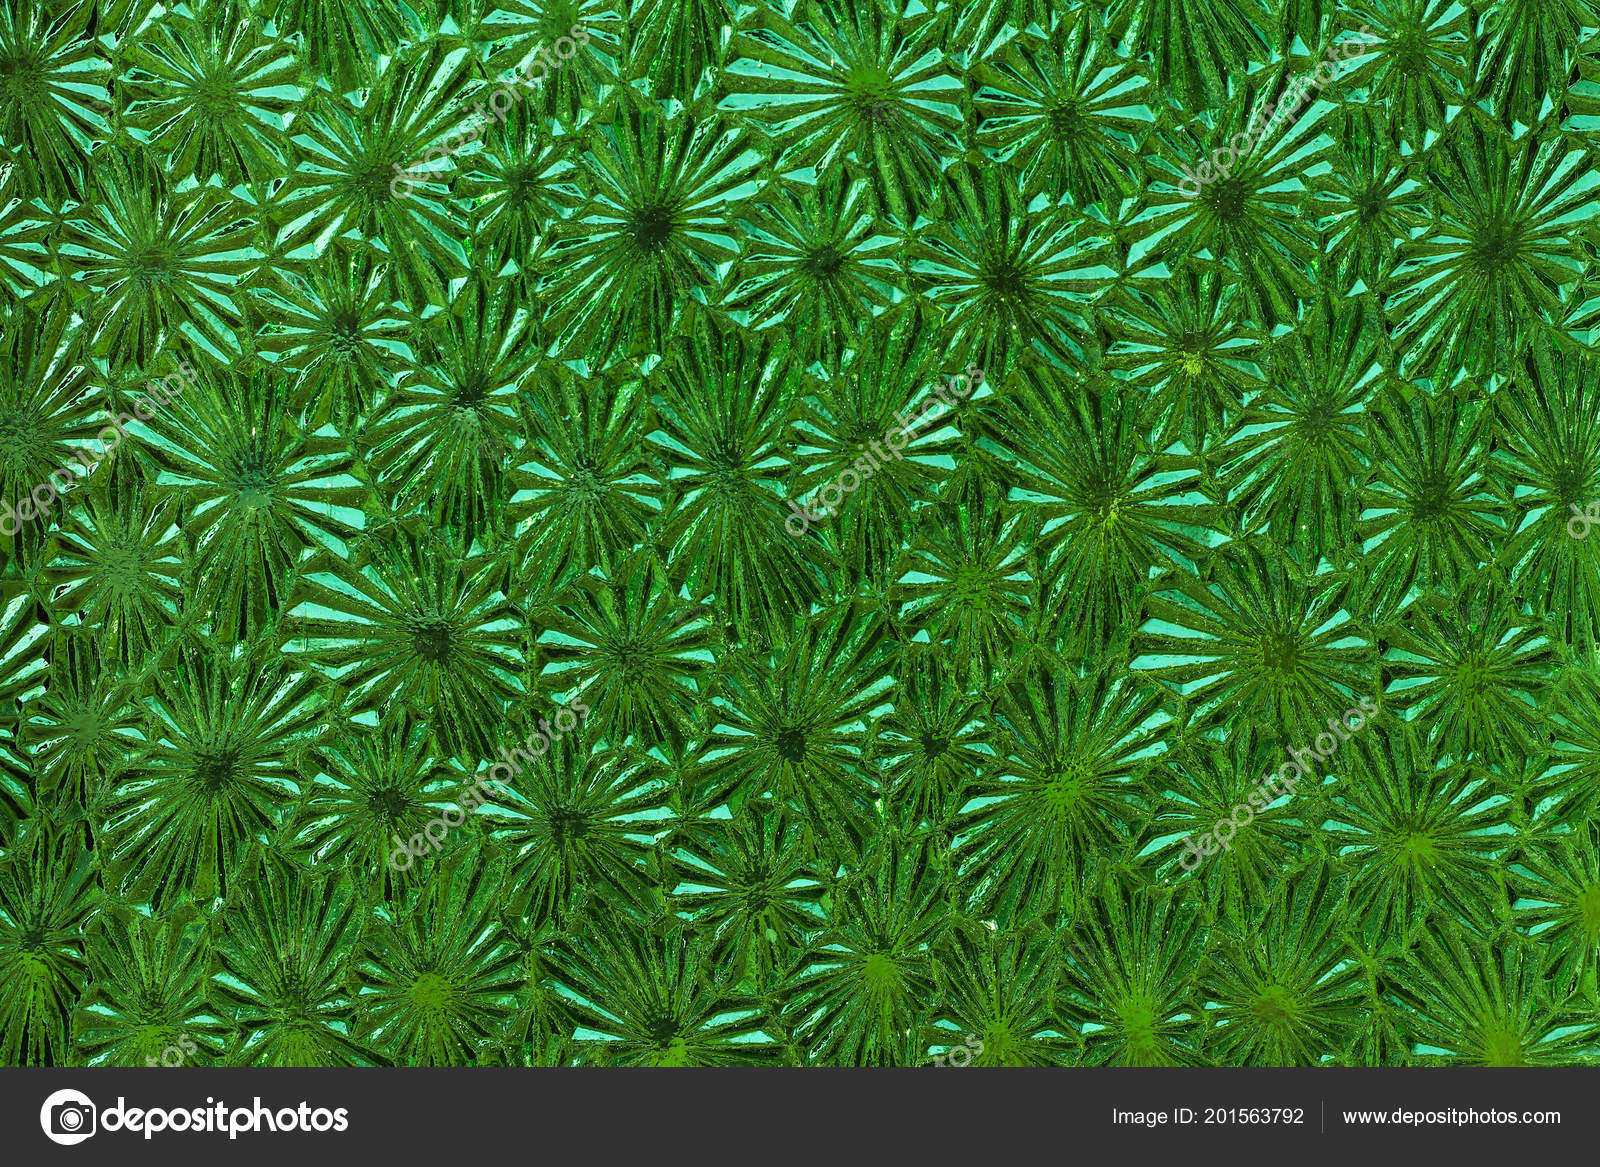 Patterned Glass Ornate Green Glass Detail Surface Glass Texture Patterned Glass